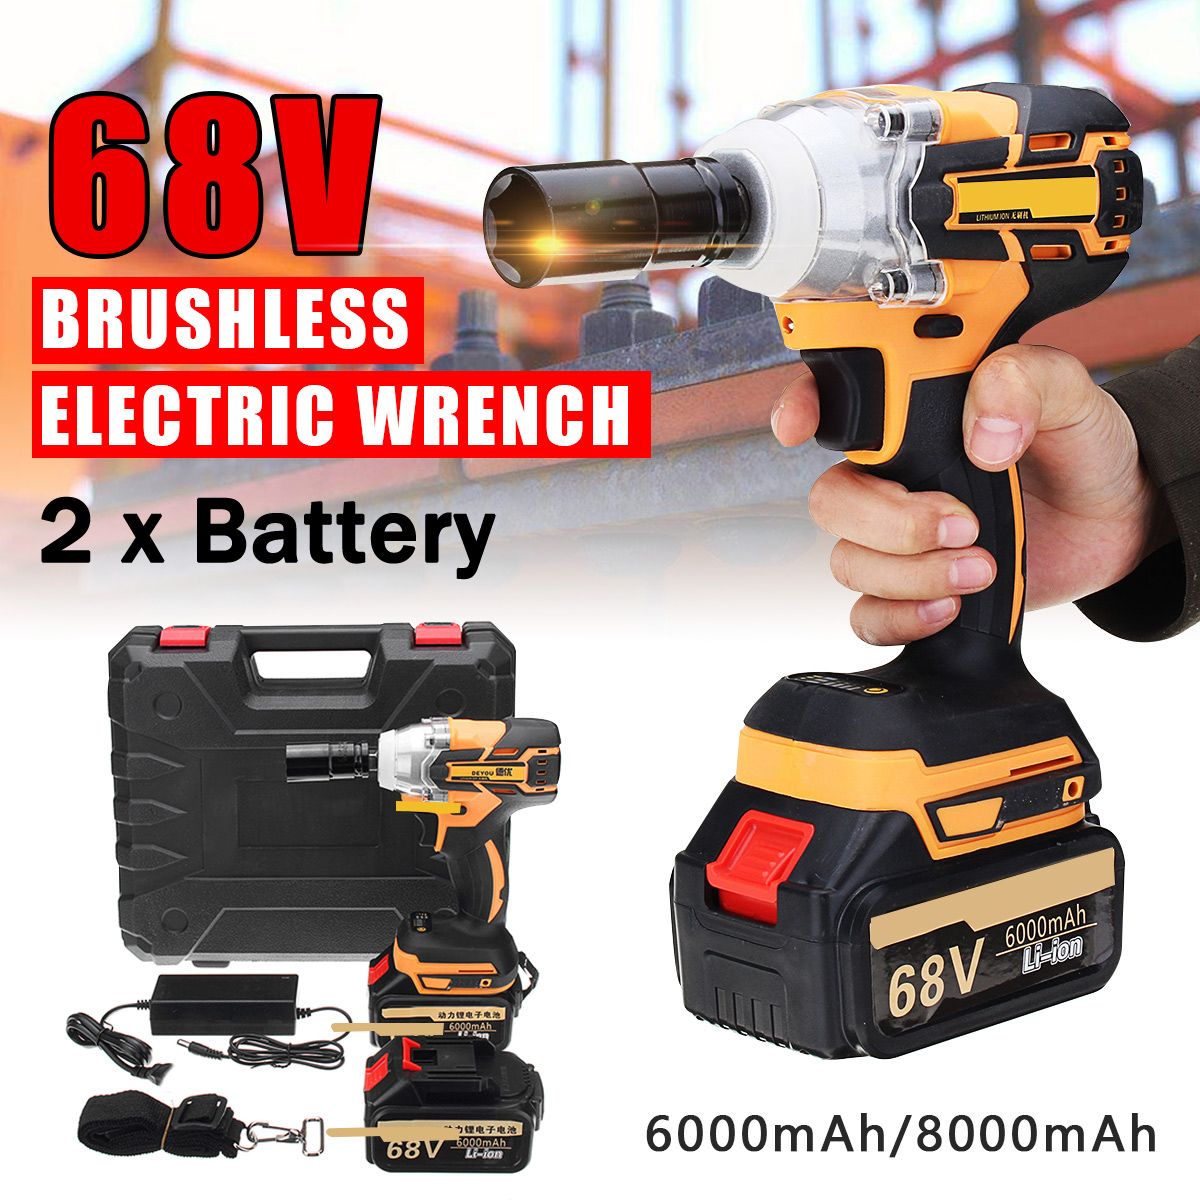 68V 6000mAh/8000mAh Electric Impact Wrench Cordless Brushless with 2 Rechargeable Battery